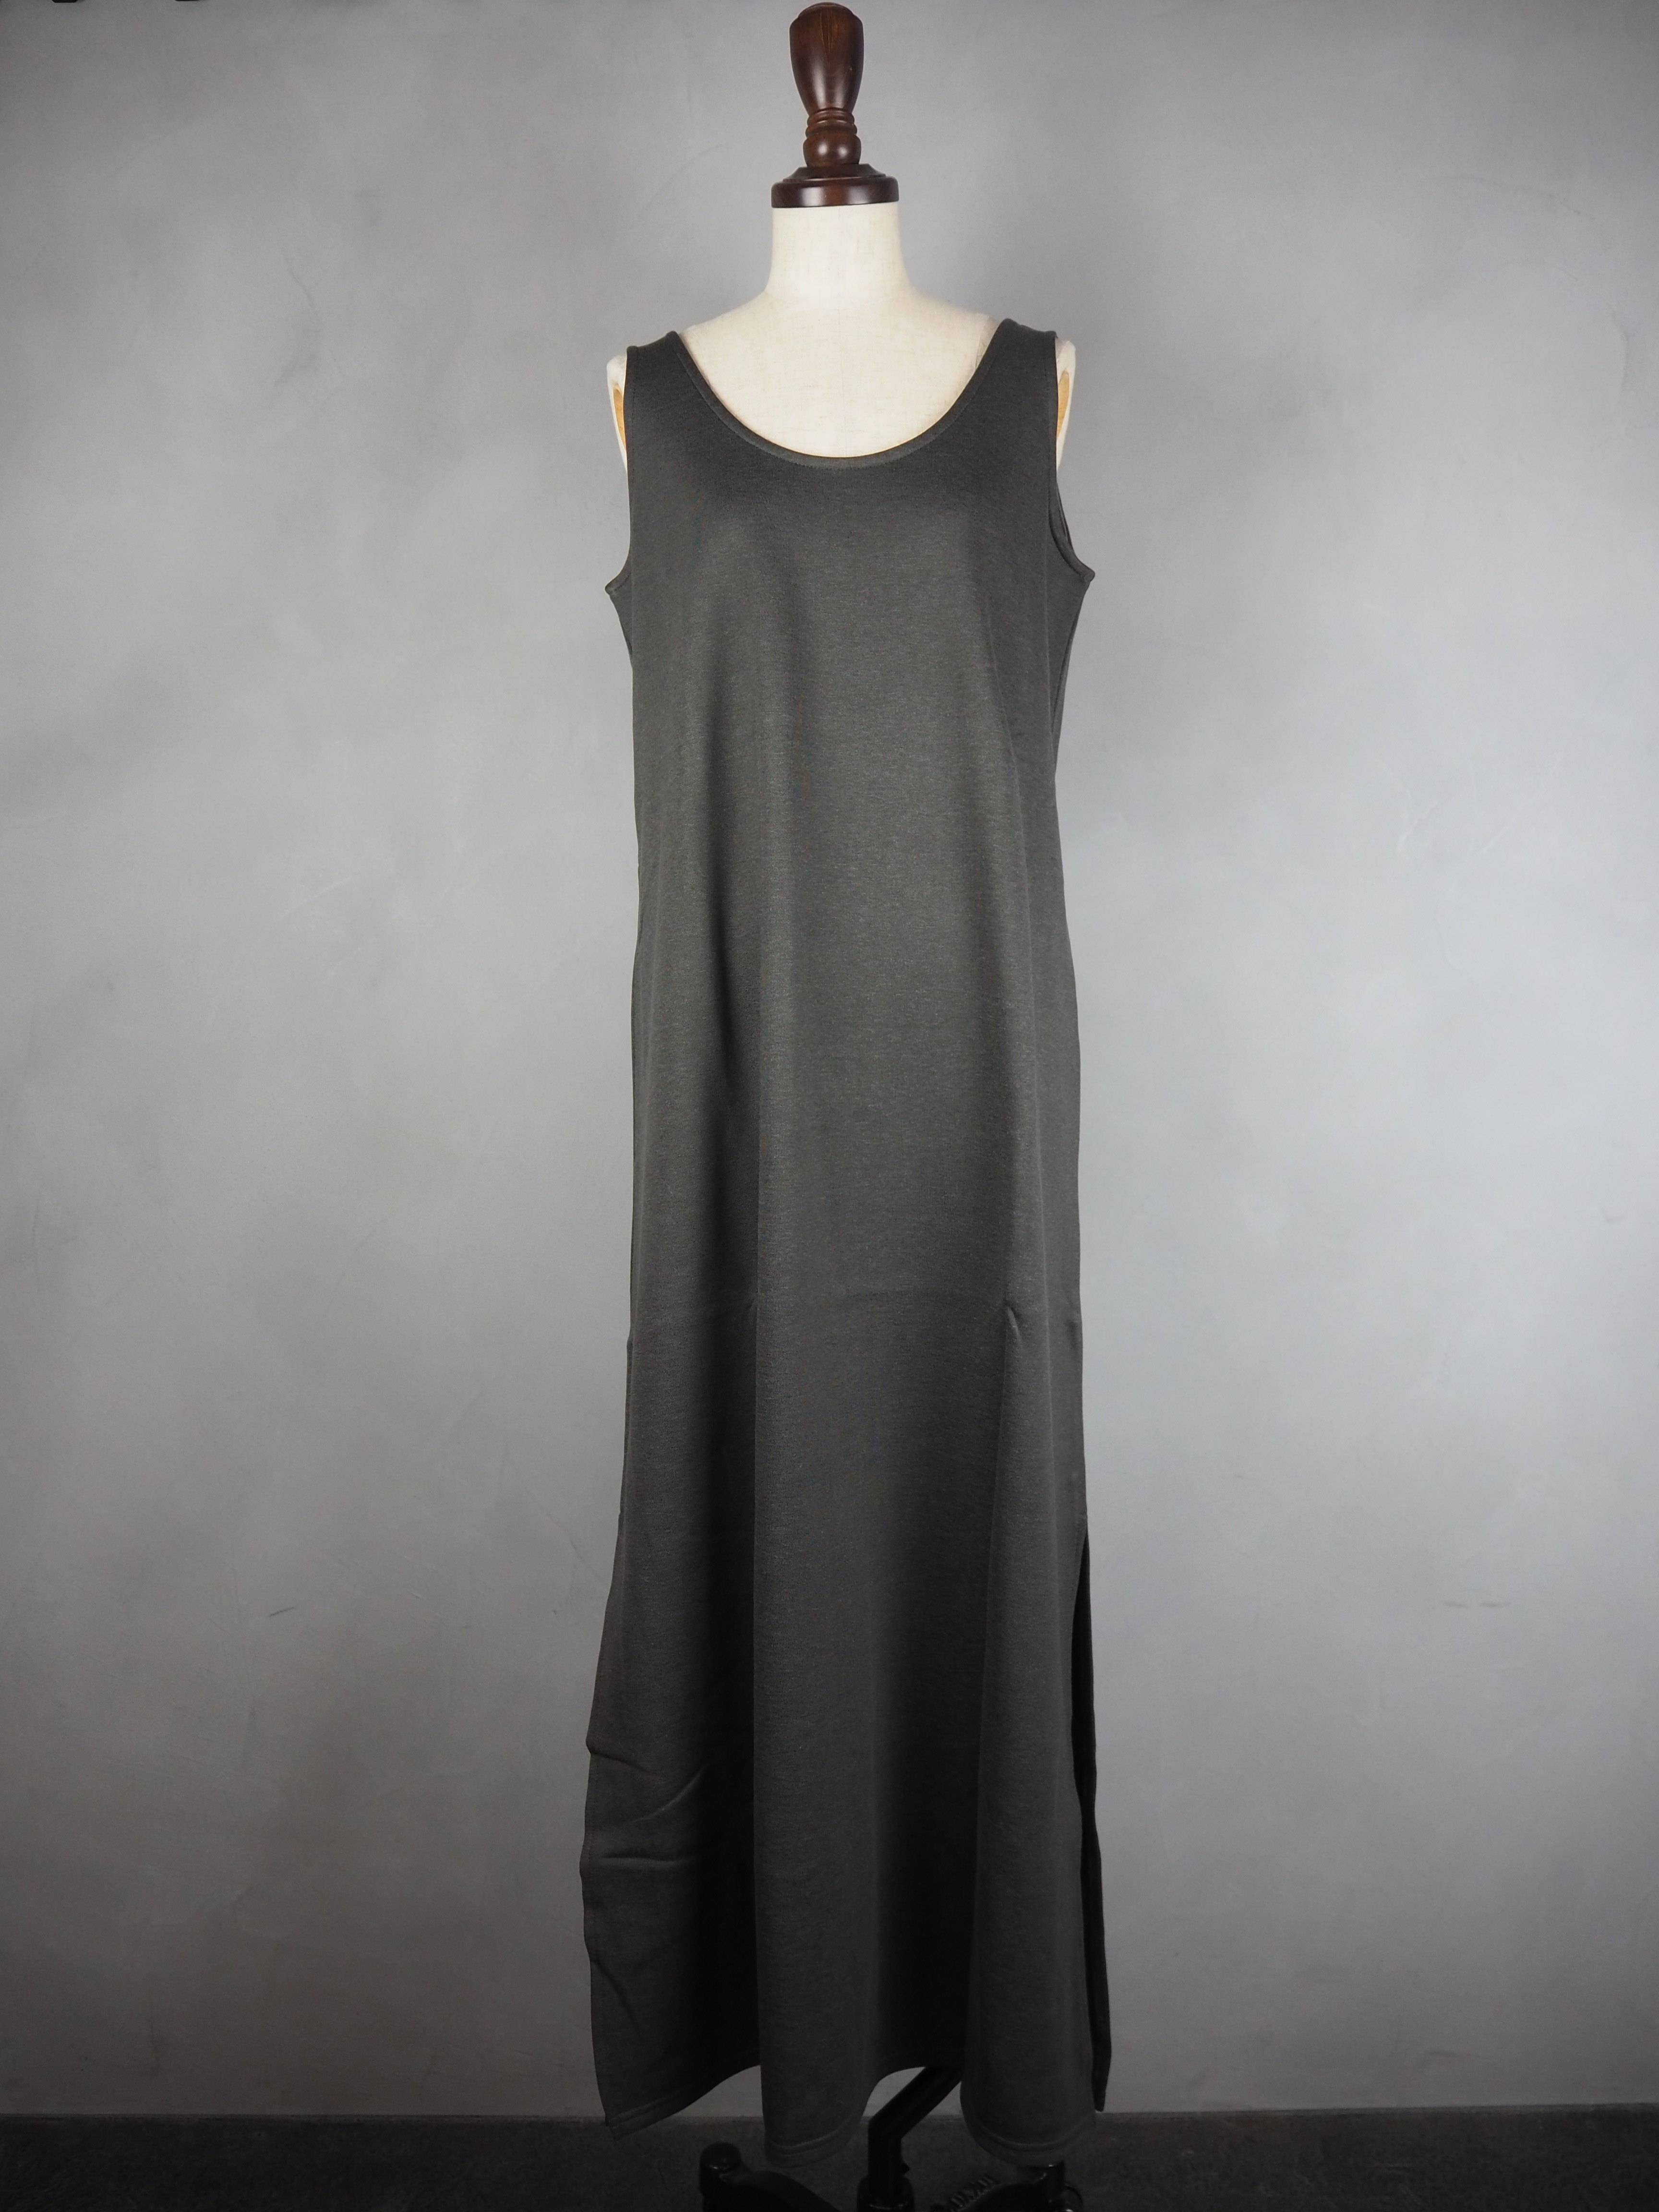 【ENLIGHTENMENT】COTTON RAYON MAXI ONEPIECE